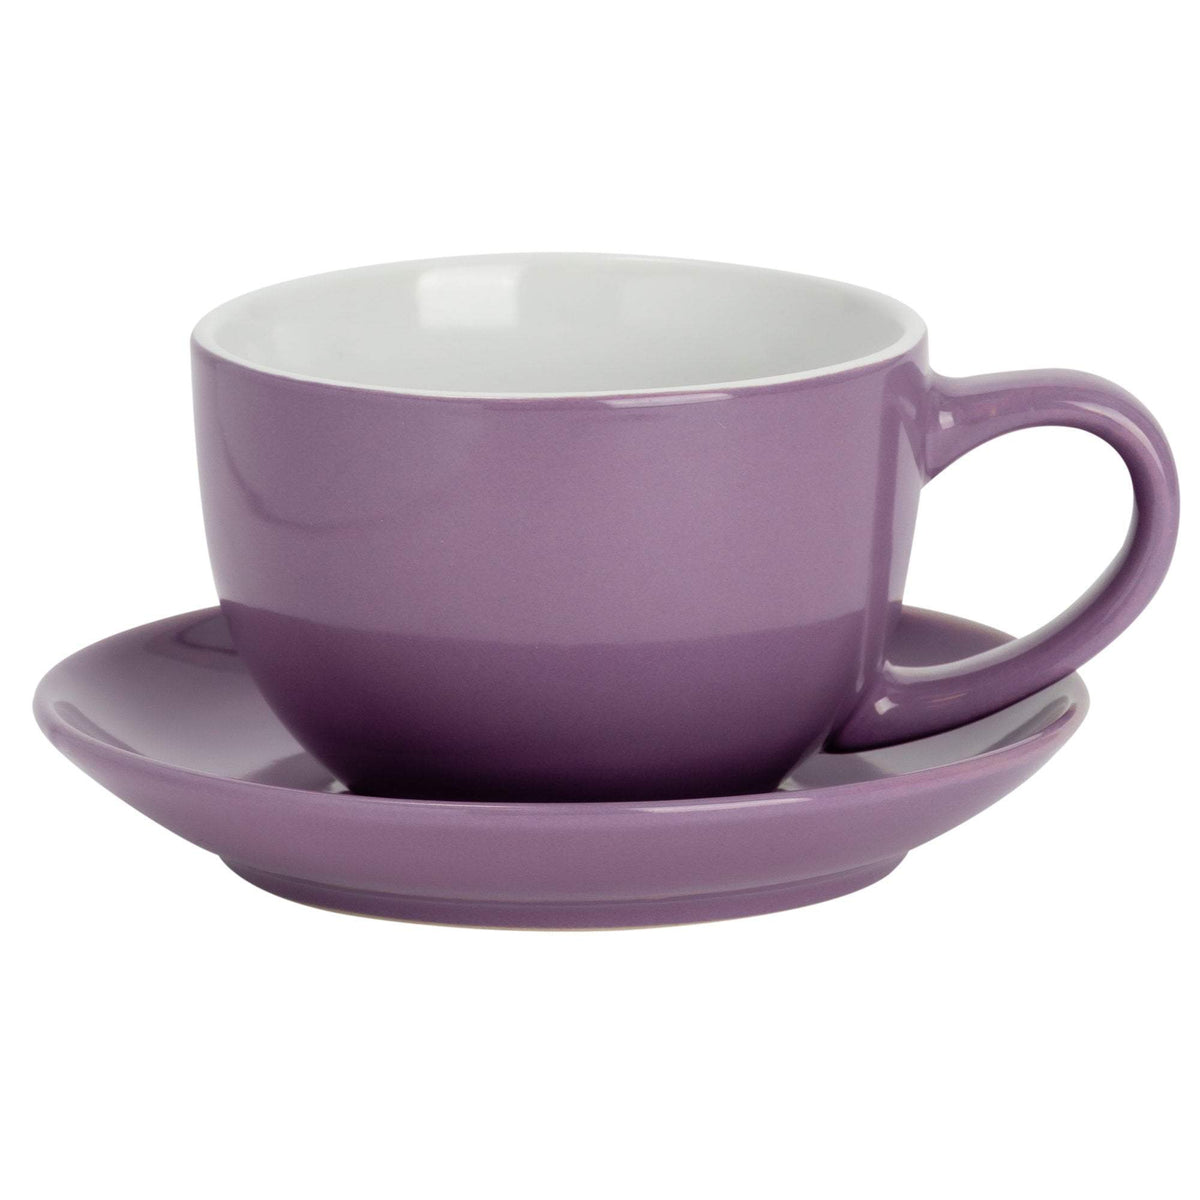 Argon Tableware Coloured Saucer for Cappuccino Cup - Purple - 14cm